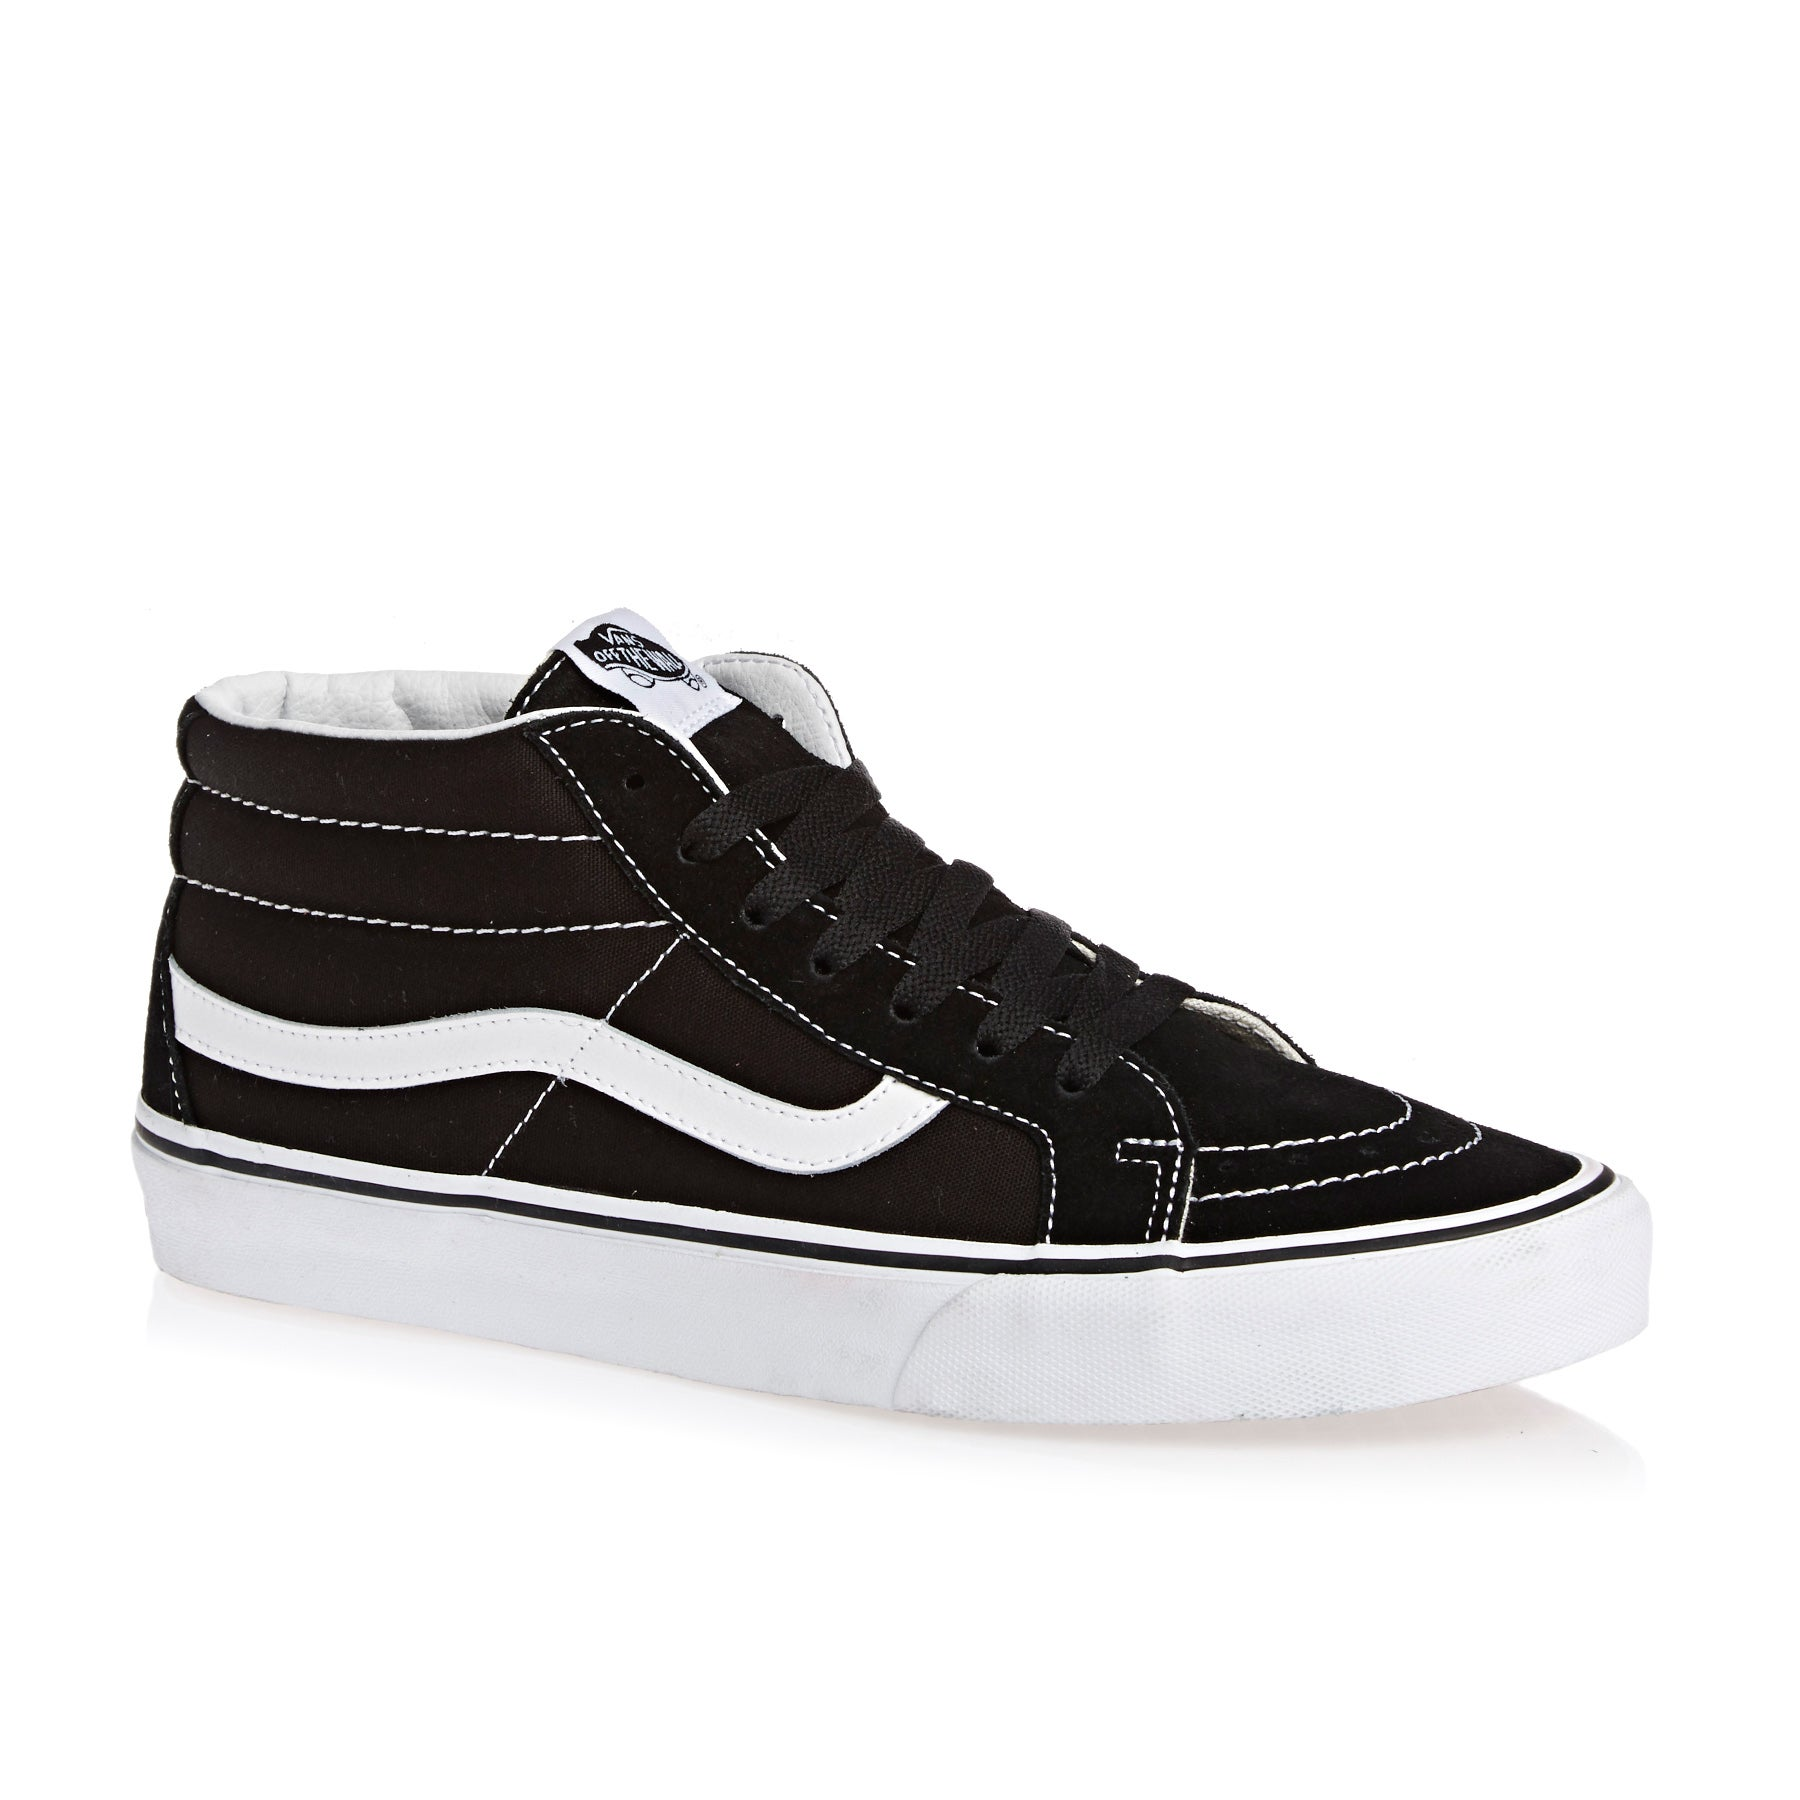 Vans SK8 Mid Reissue Shoes | Free Delivery Options